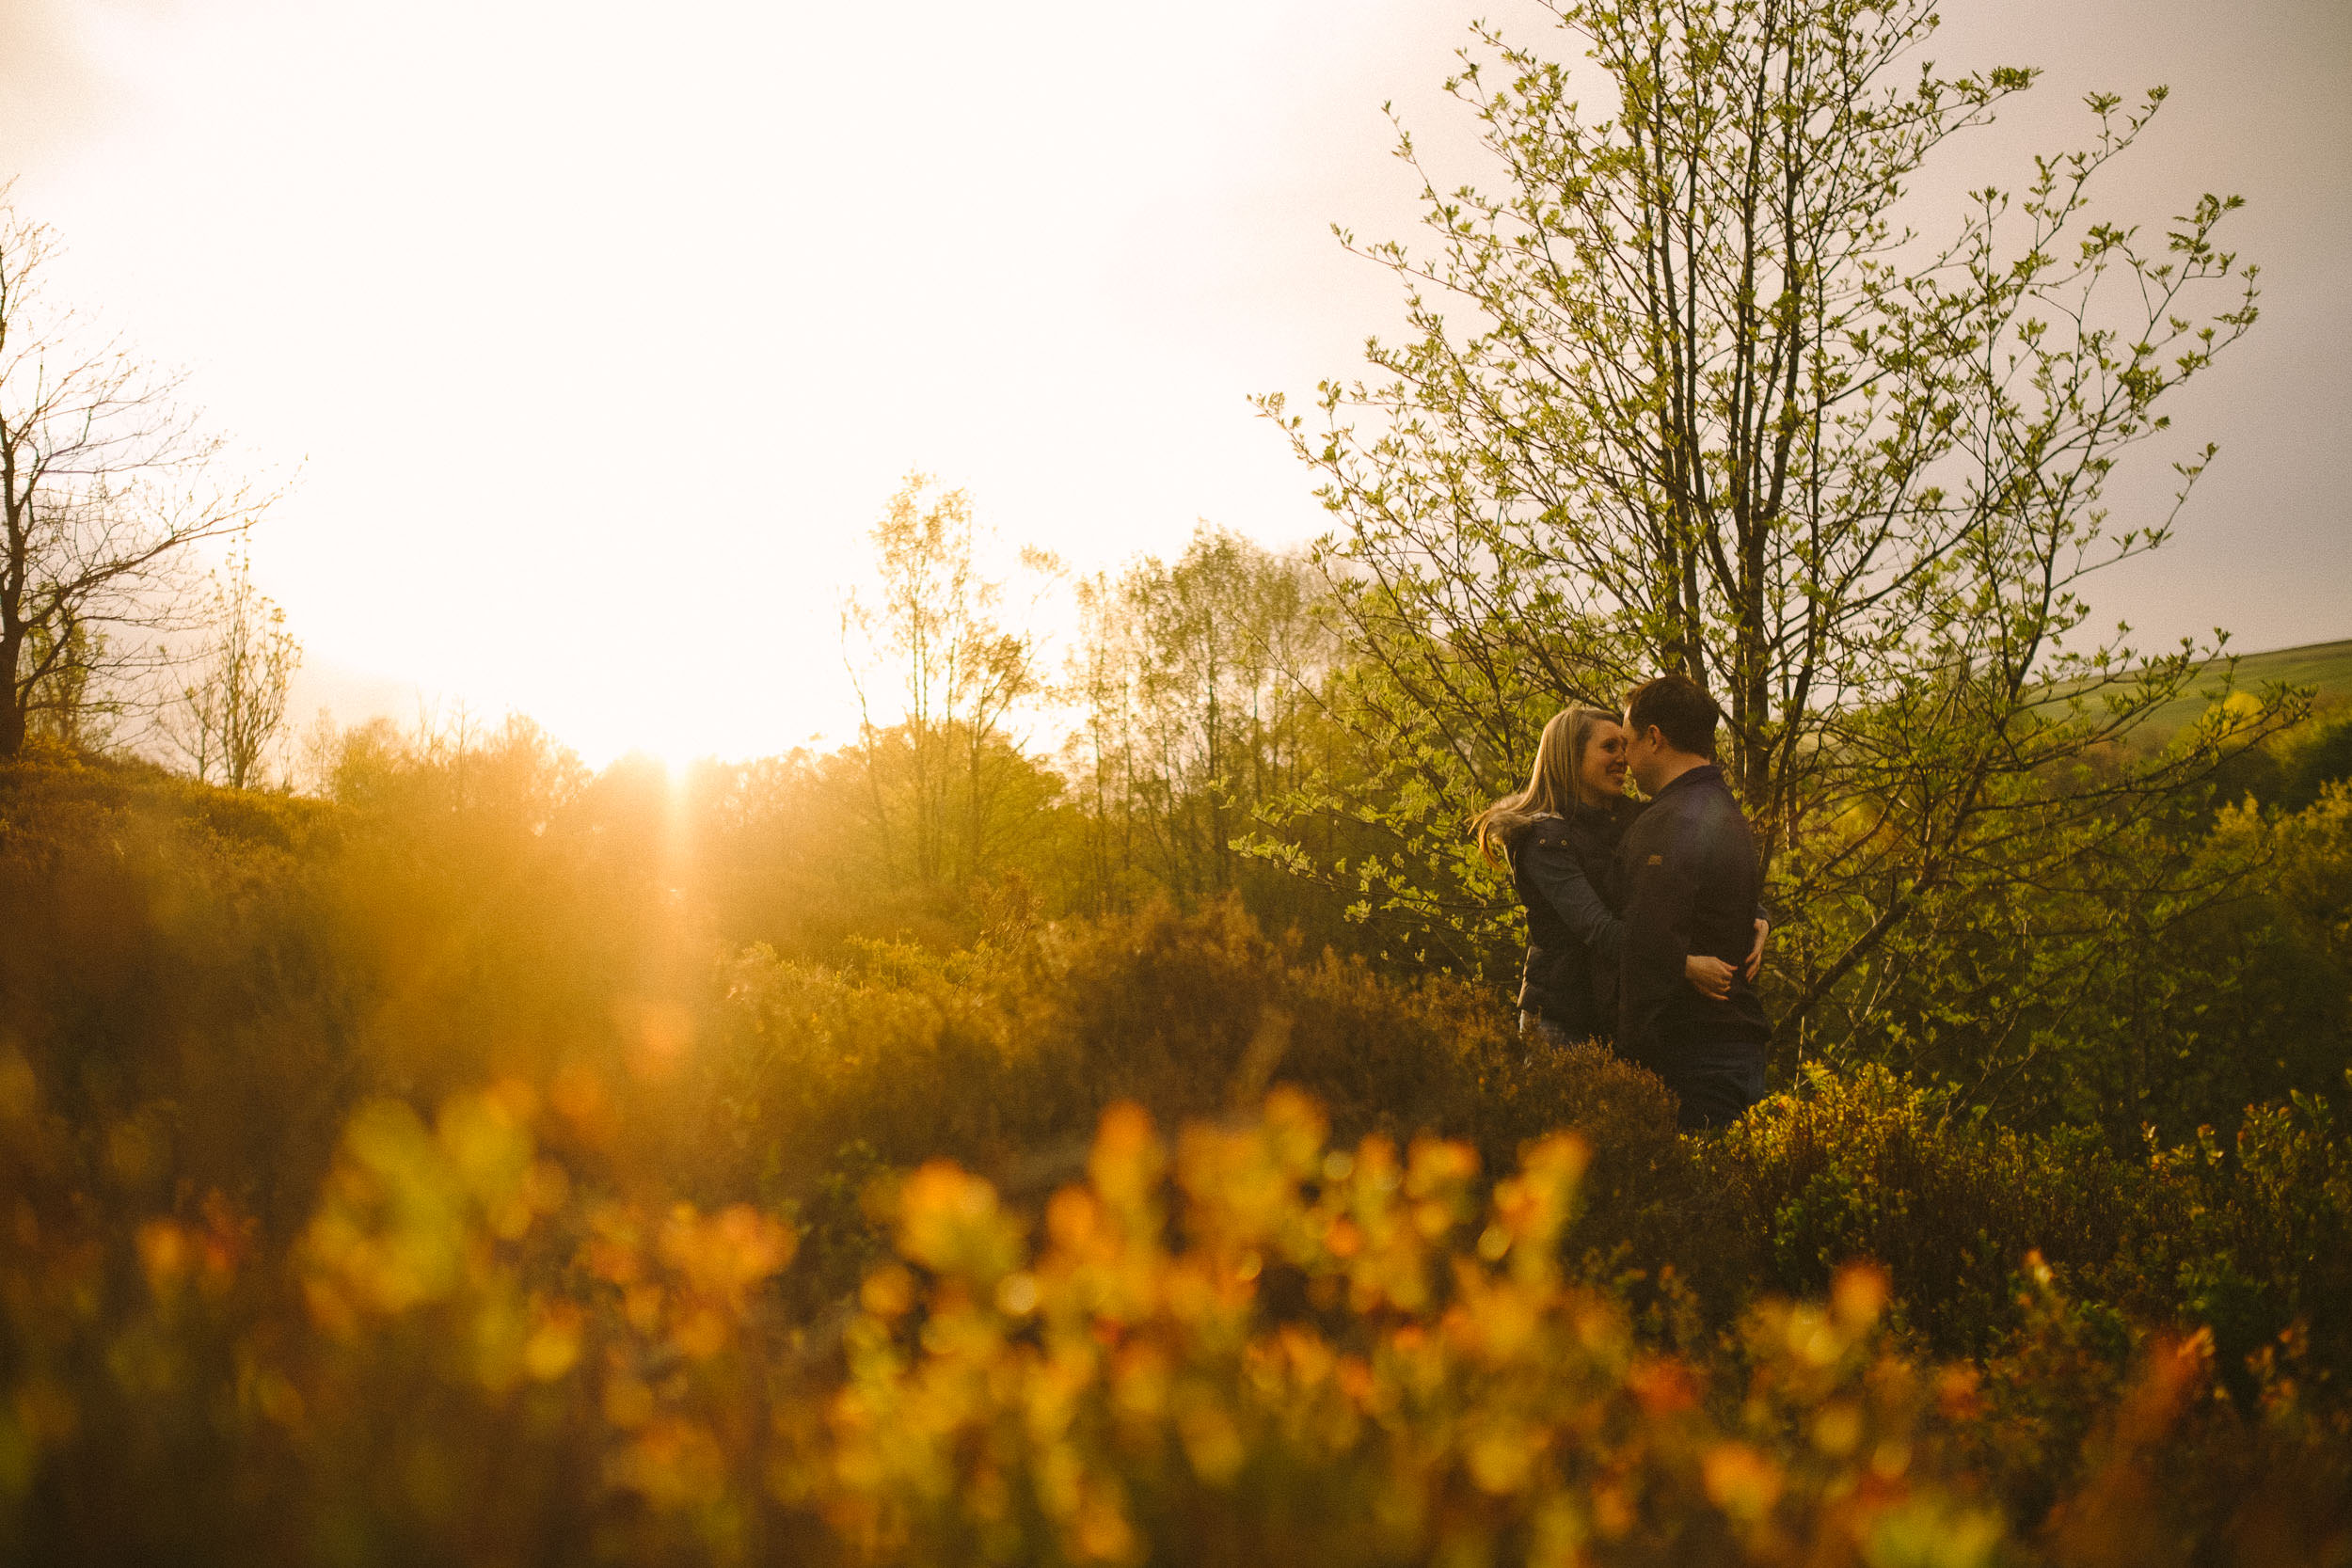 Couple cuddling in undergrowth near tree with the sun shining